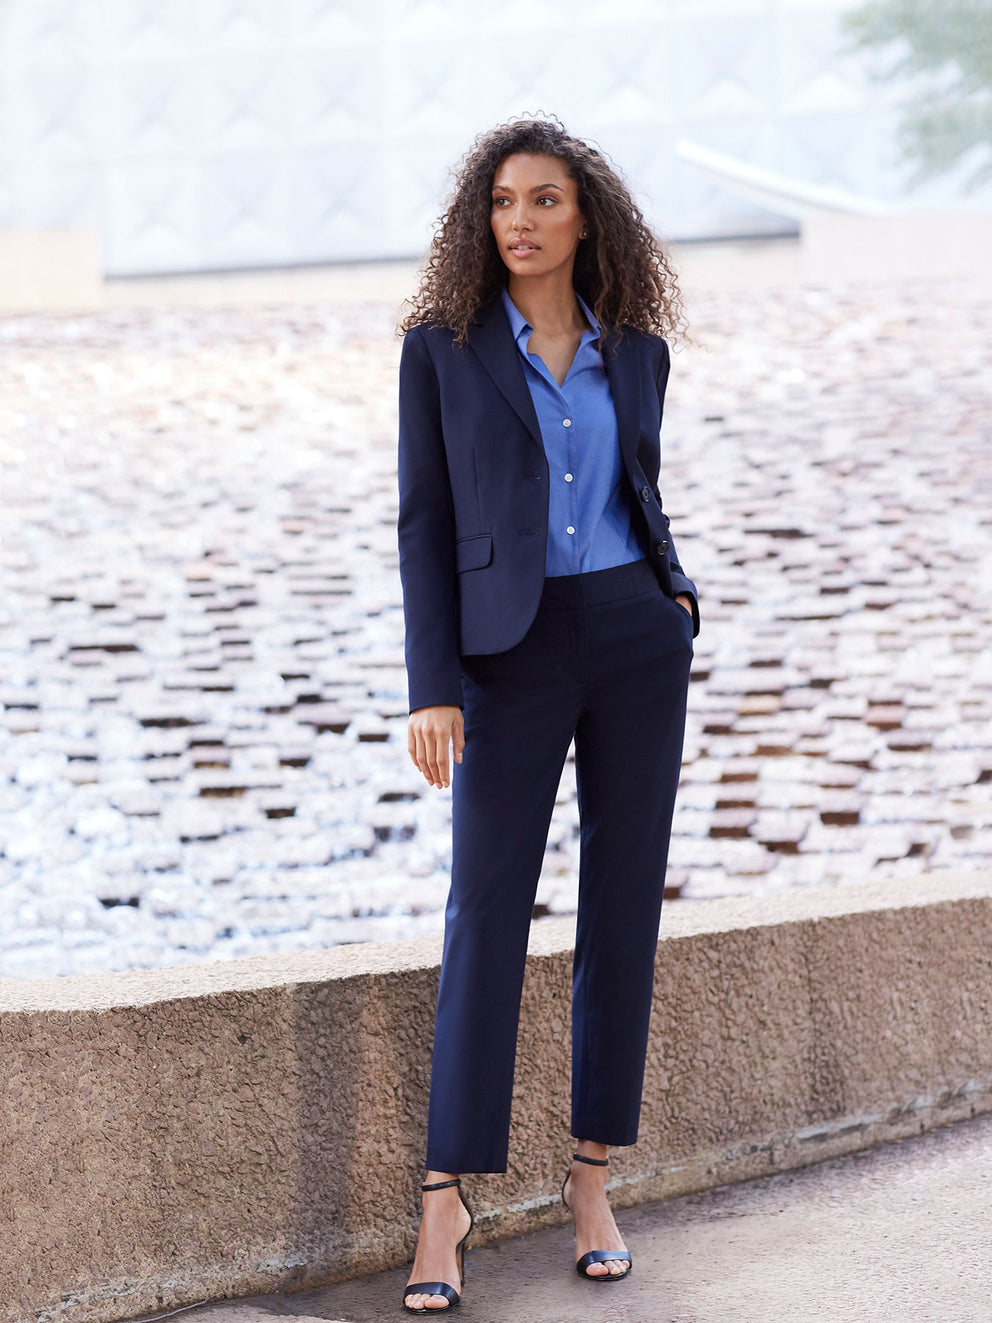 The Jones New York Washable Sydney Pant in color Navy - Image Position 2